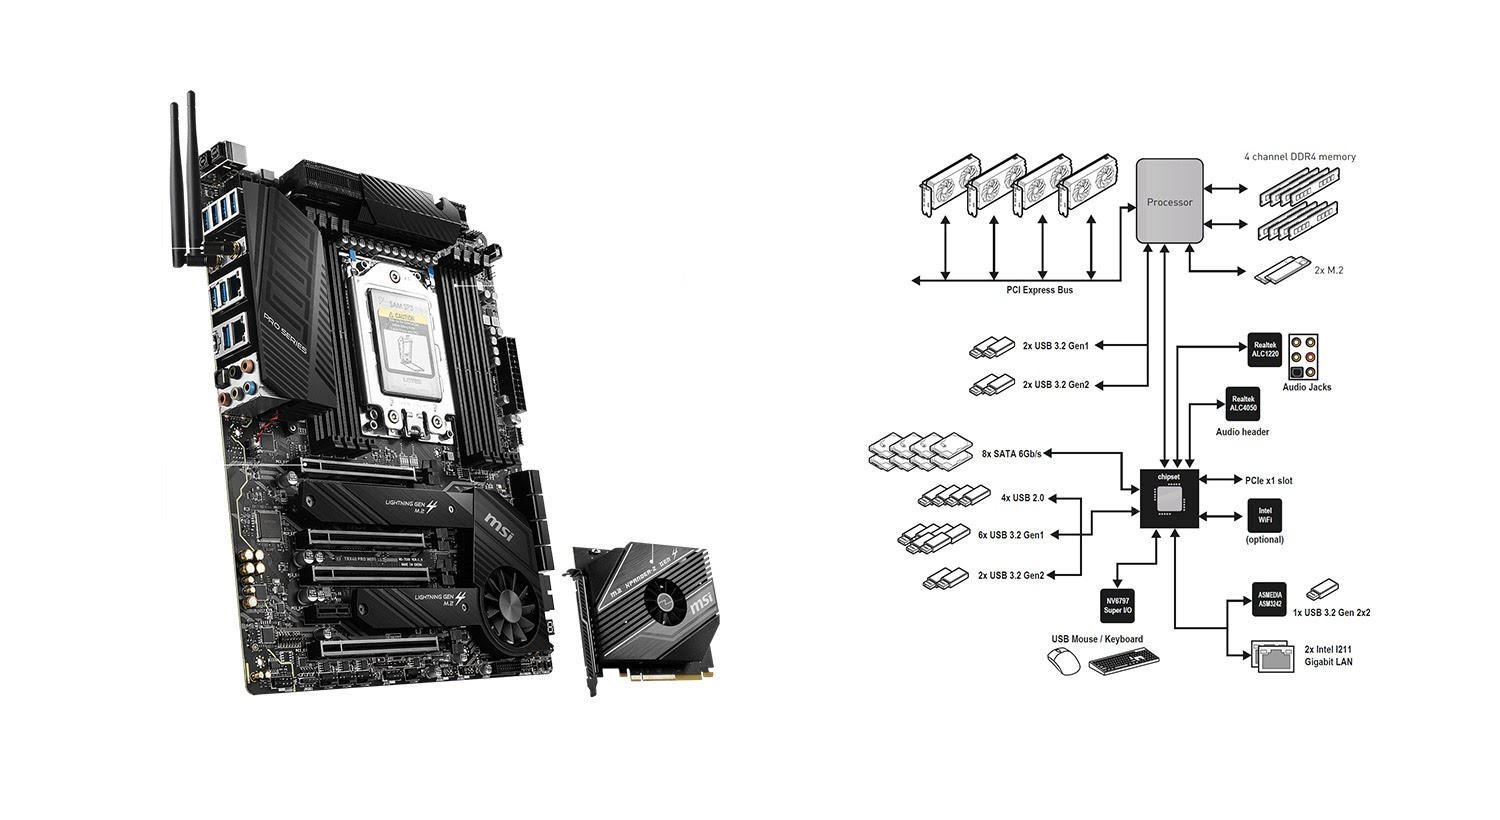 Building your own editing PC - a complete guide 20